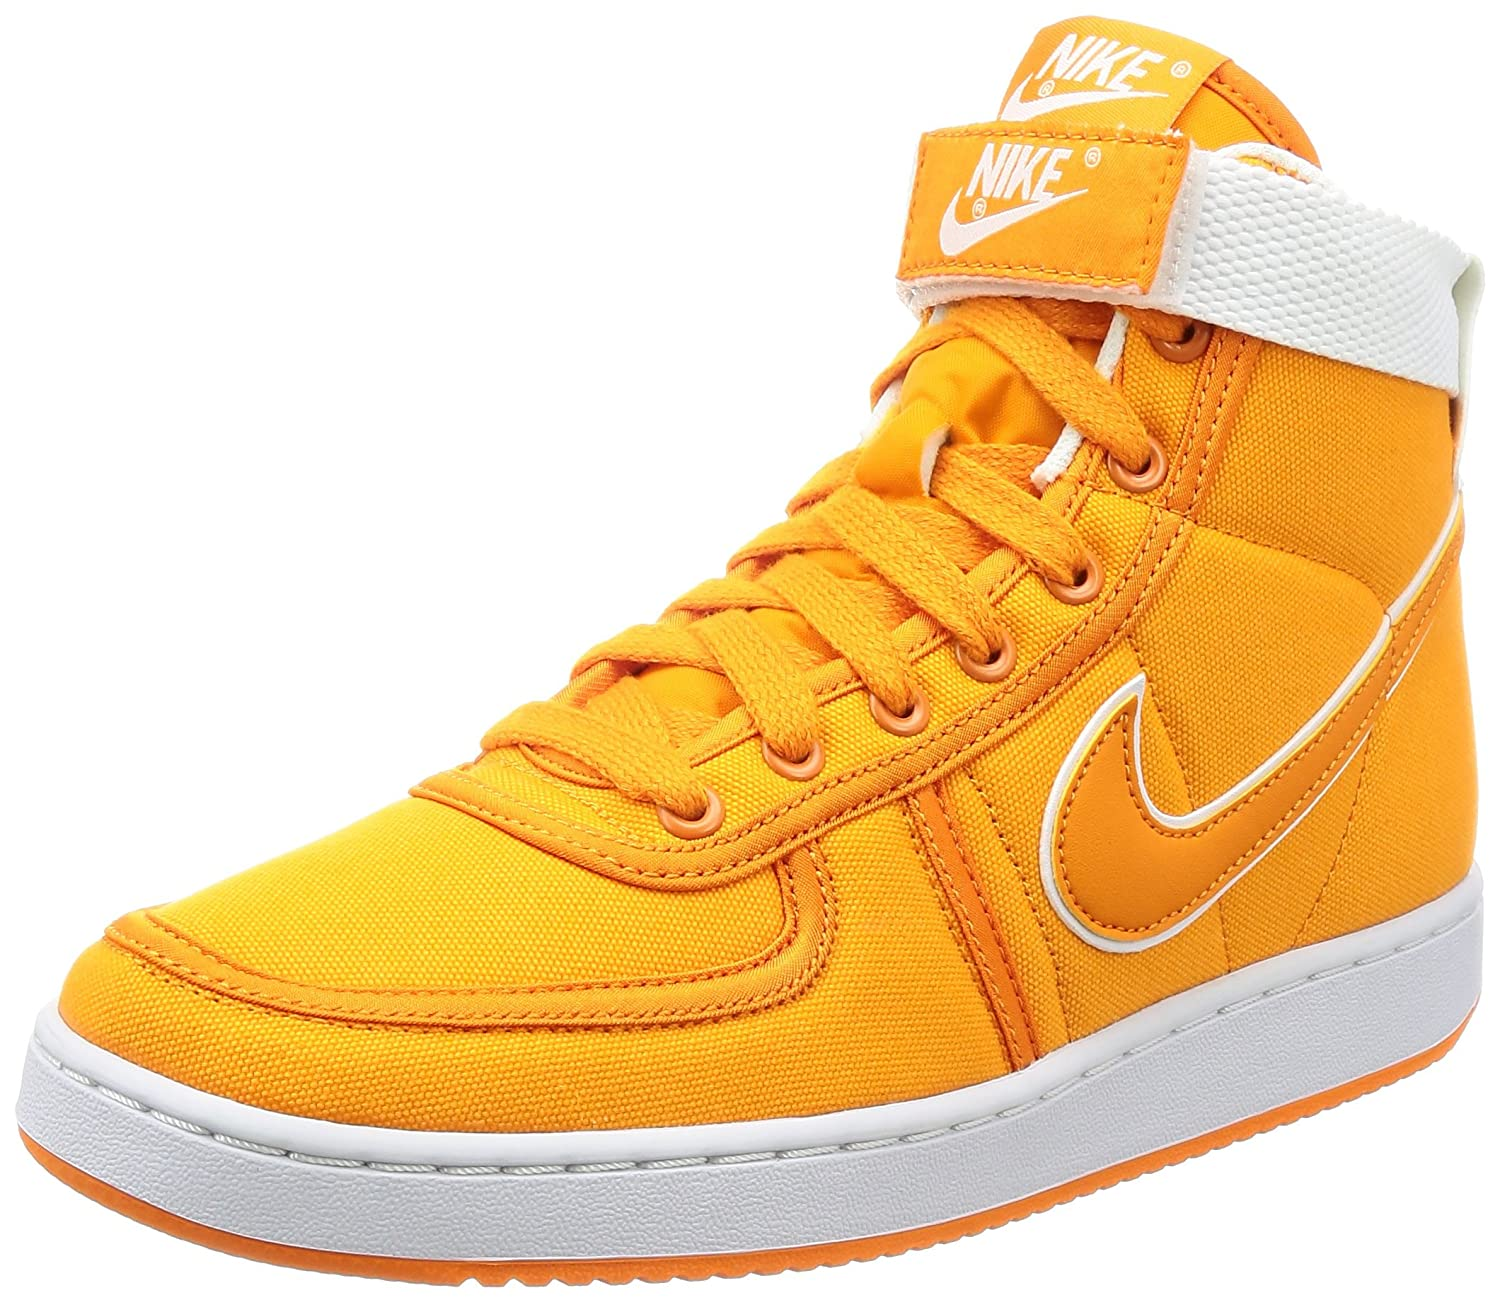 df1e451f1e7 Nike Vandal High Supreme CNVS QS Mens Fashion-Sneakers AH8605-800 10.5 -  Bright Ceramic White-White  Amazon.co.uk  Shoes   Bags